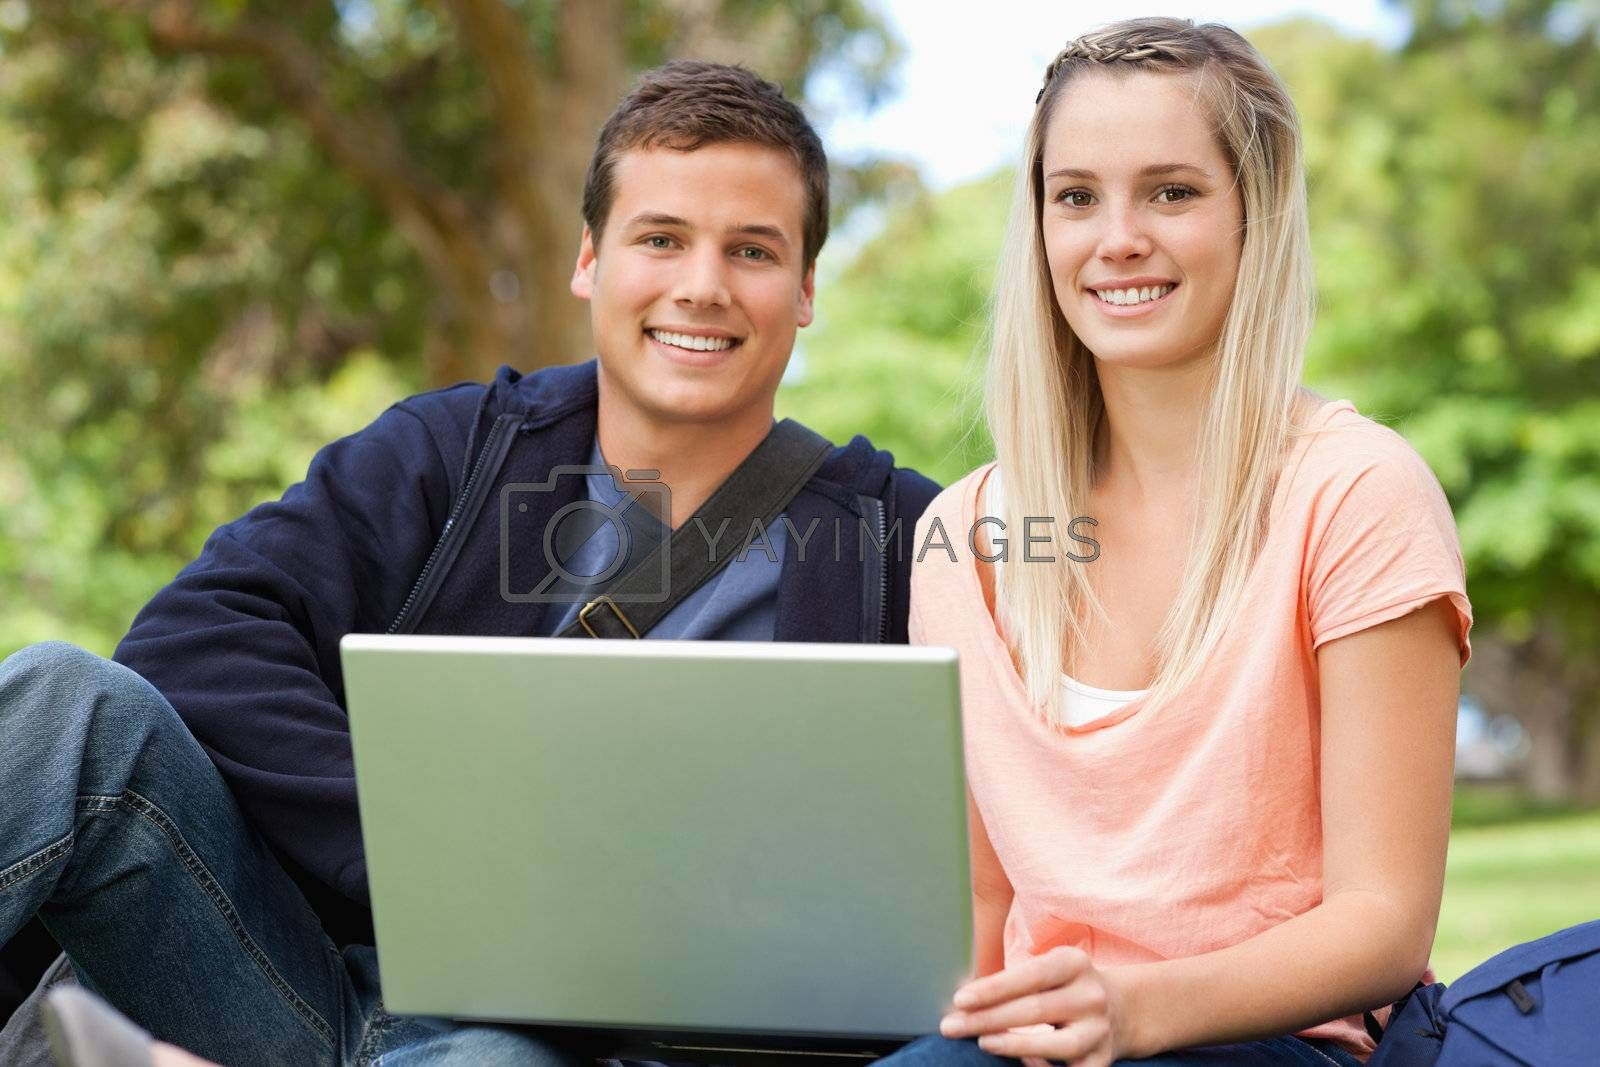 Portrait of two students laughing while sitting with a laptop in a park